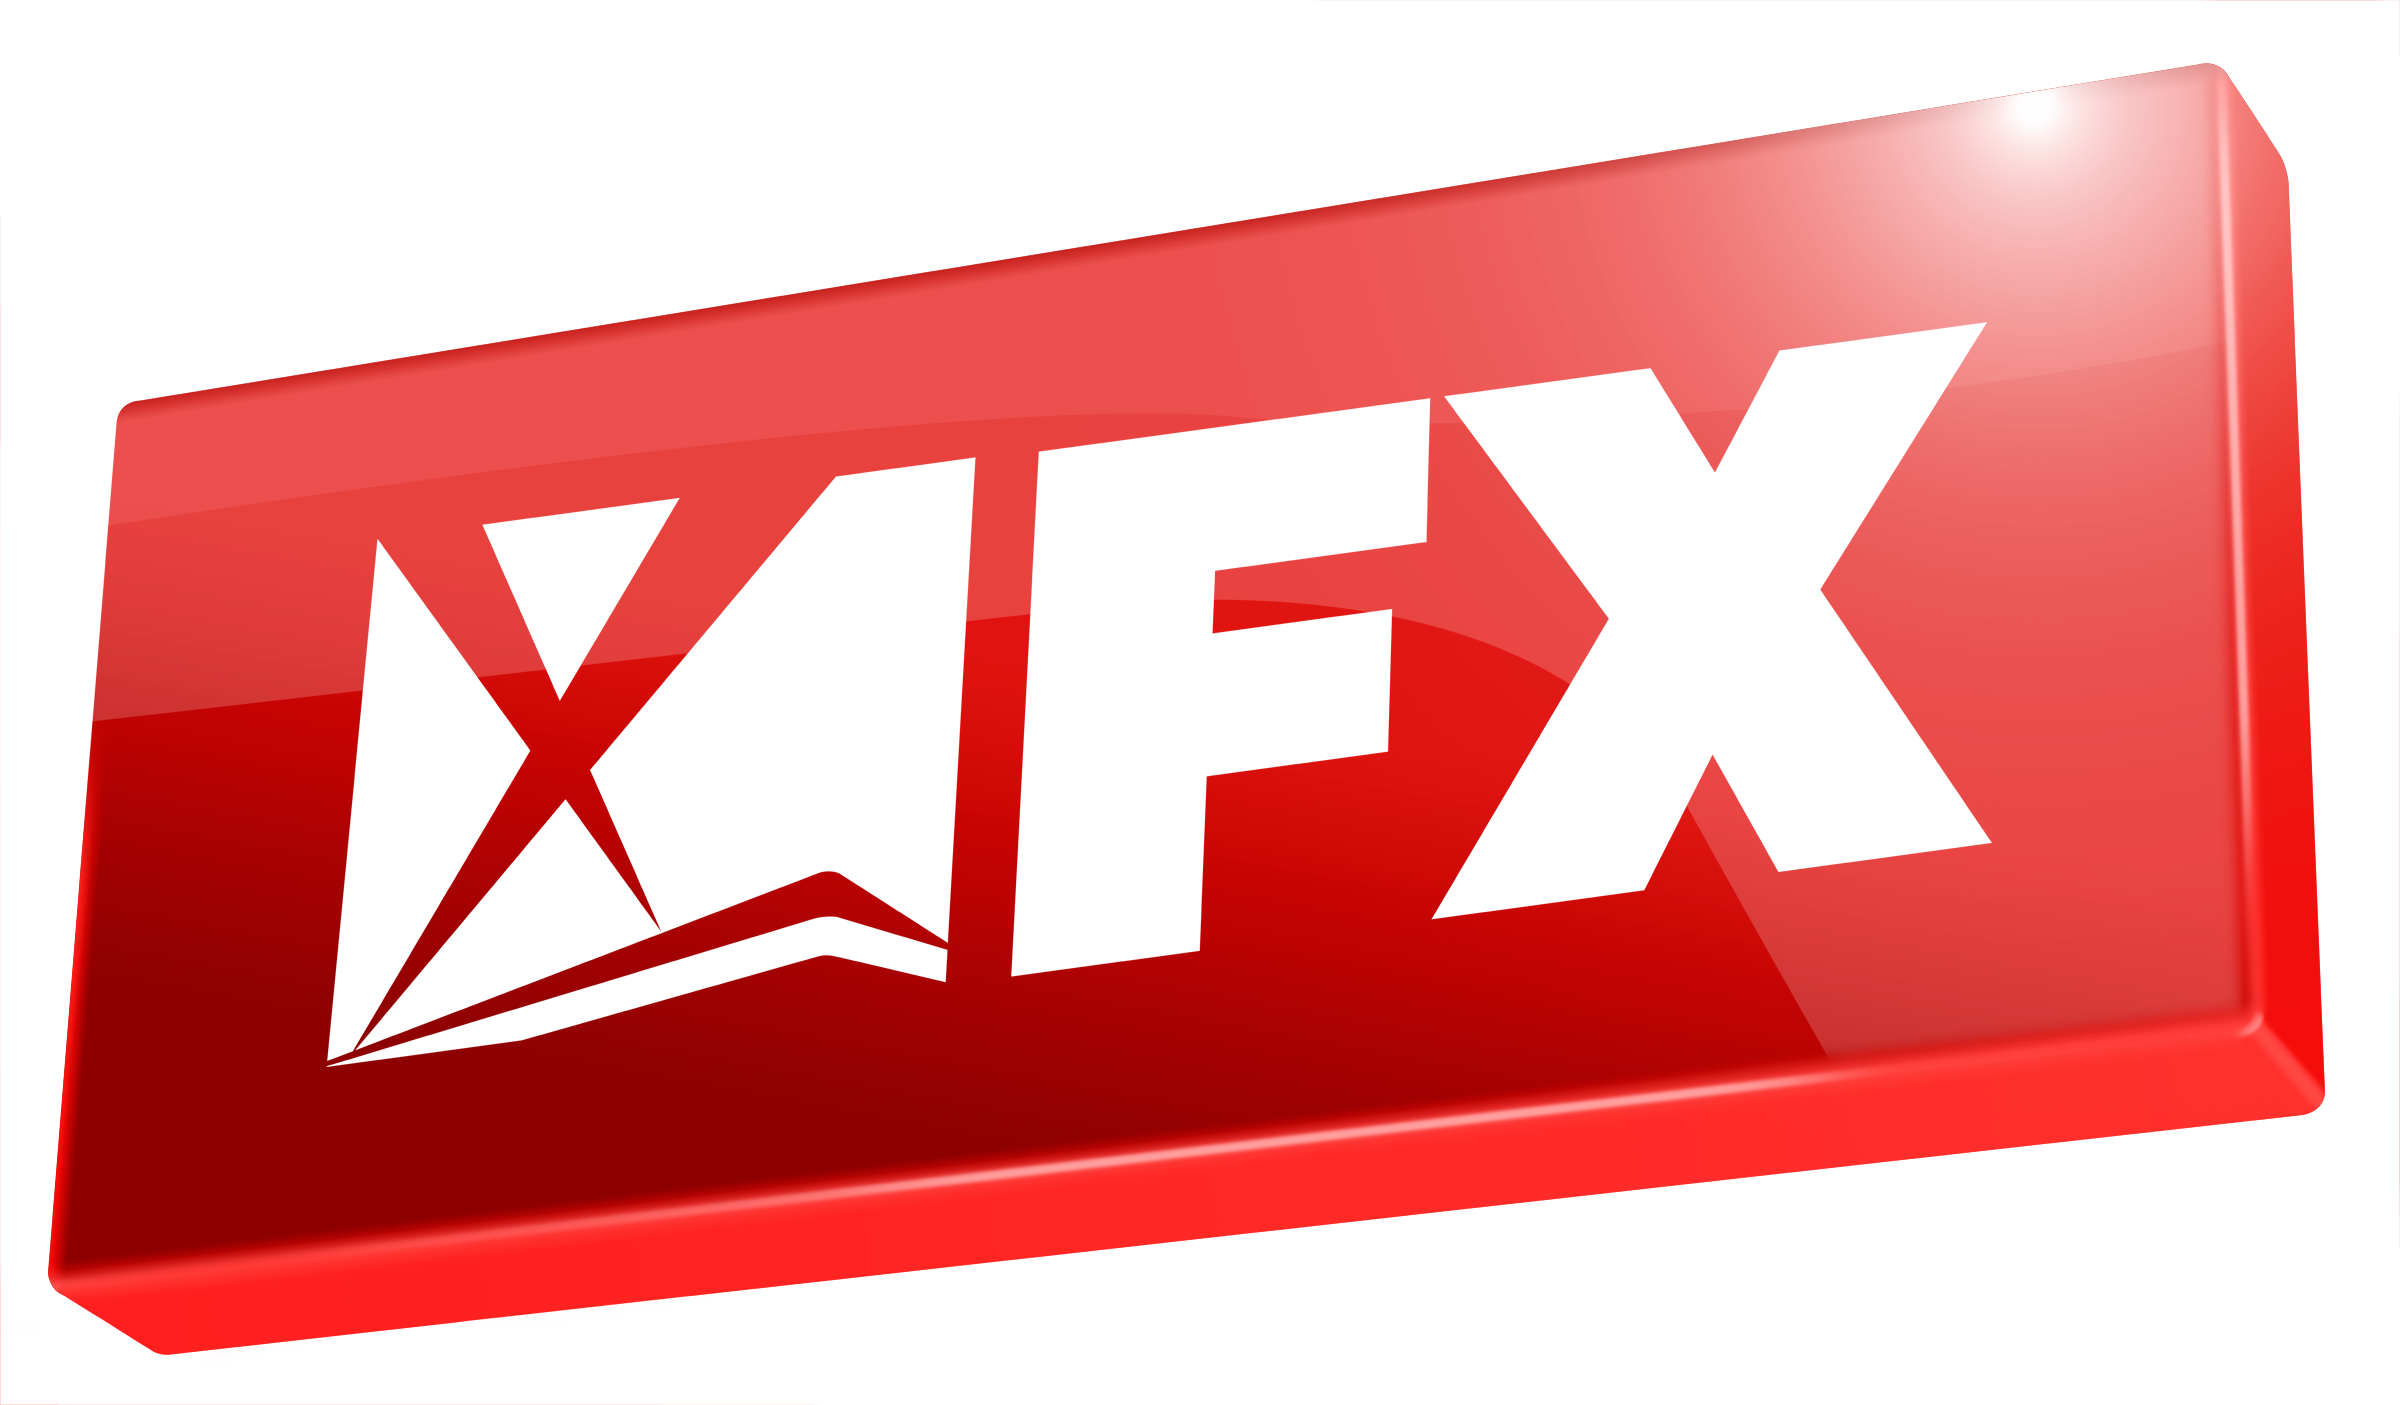 What is fx